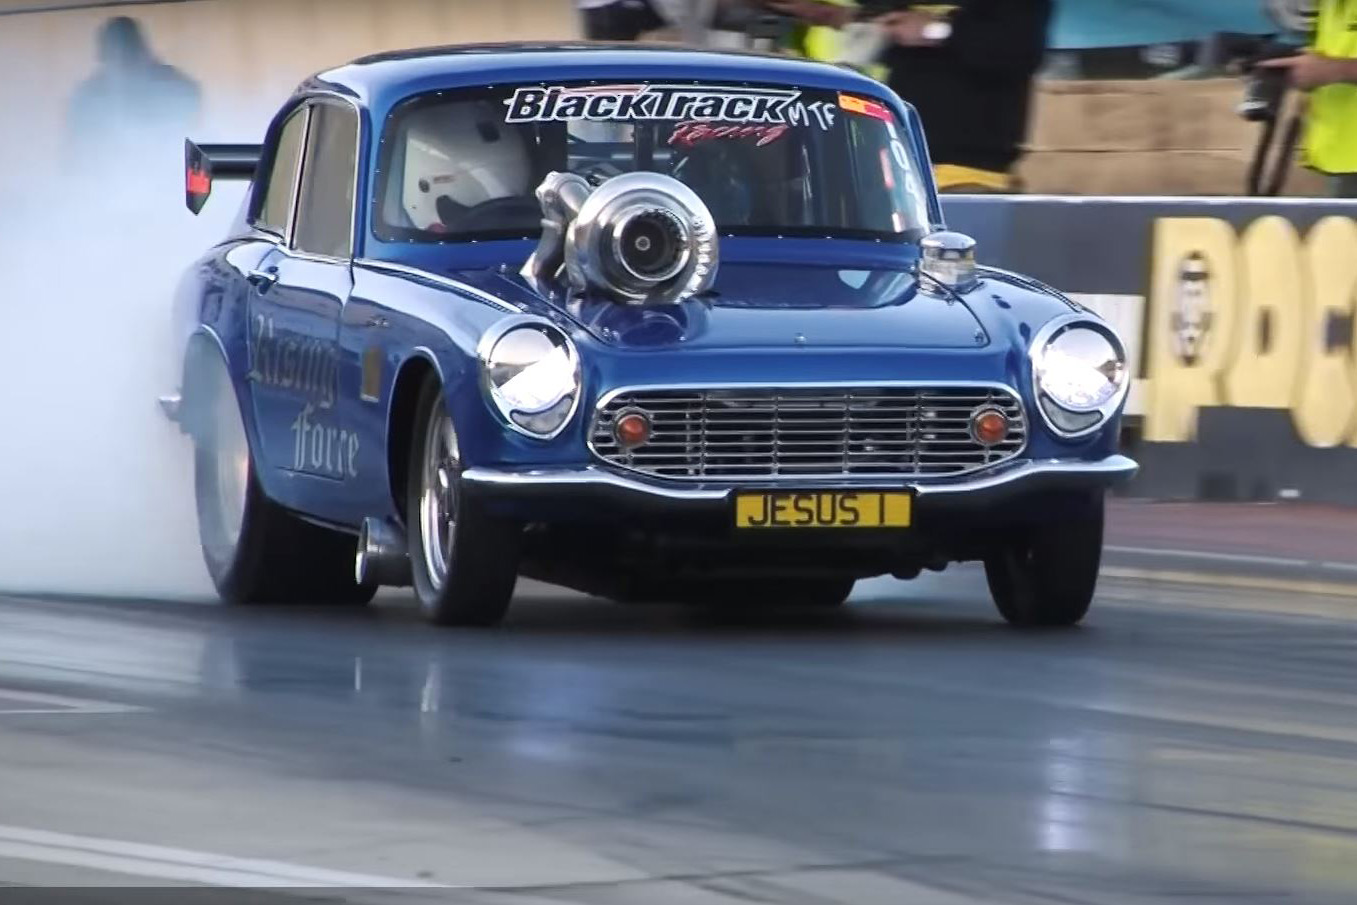 Video: Experience The Tiny Little Honda That Puts Out 1000hp With